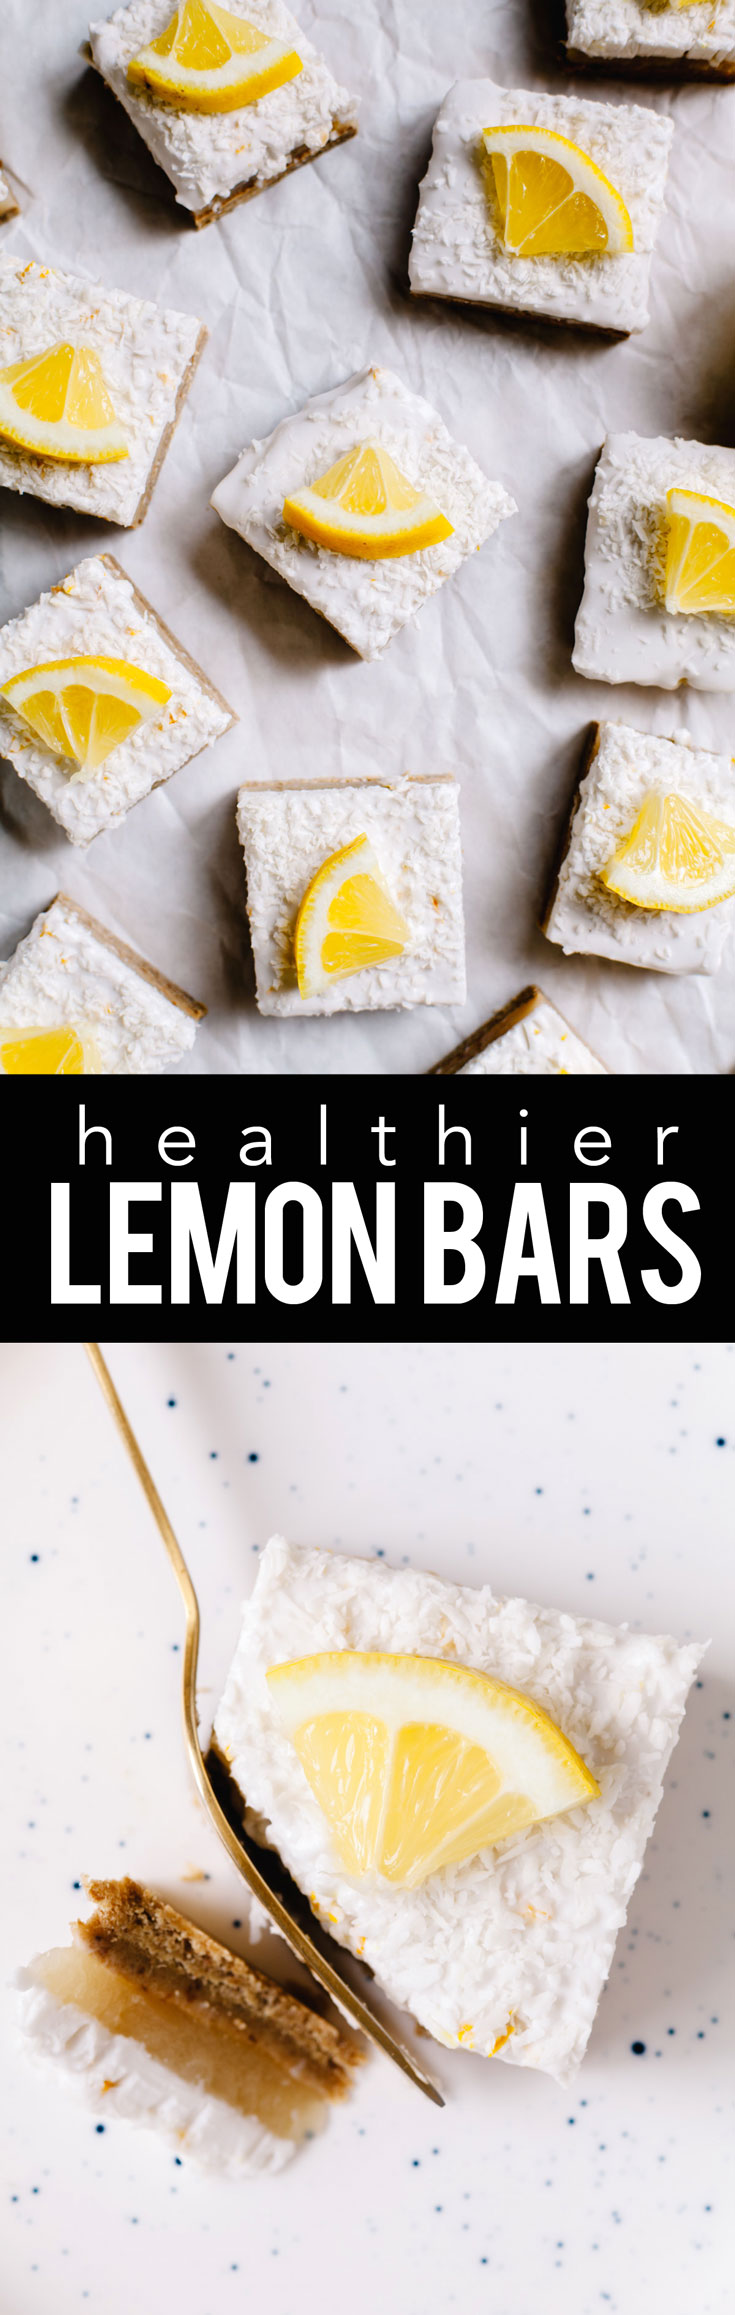 These healthier lemon bars are no-bake, gluten-free, vegan, naturally-sweetened and fully delicious. Plus they're topped with a fluffy coconut cream layer! #glutenfree #vegan #nobake #lemonbars | Brewing Happiness